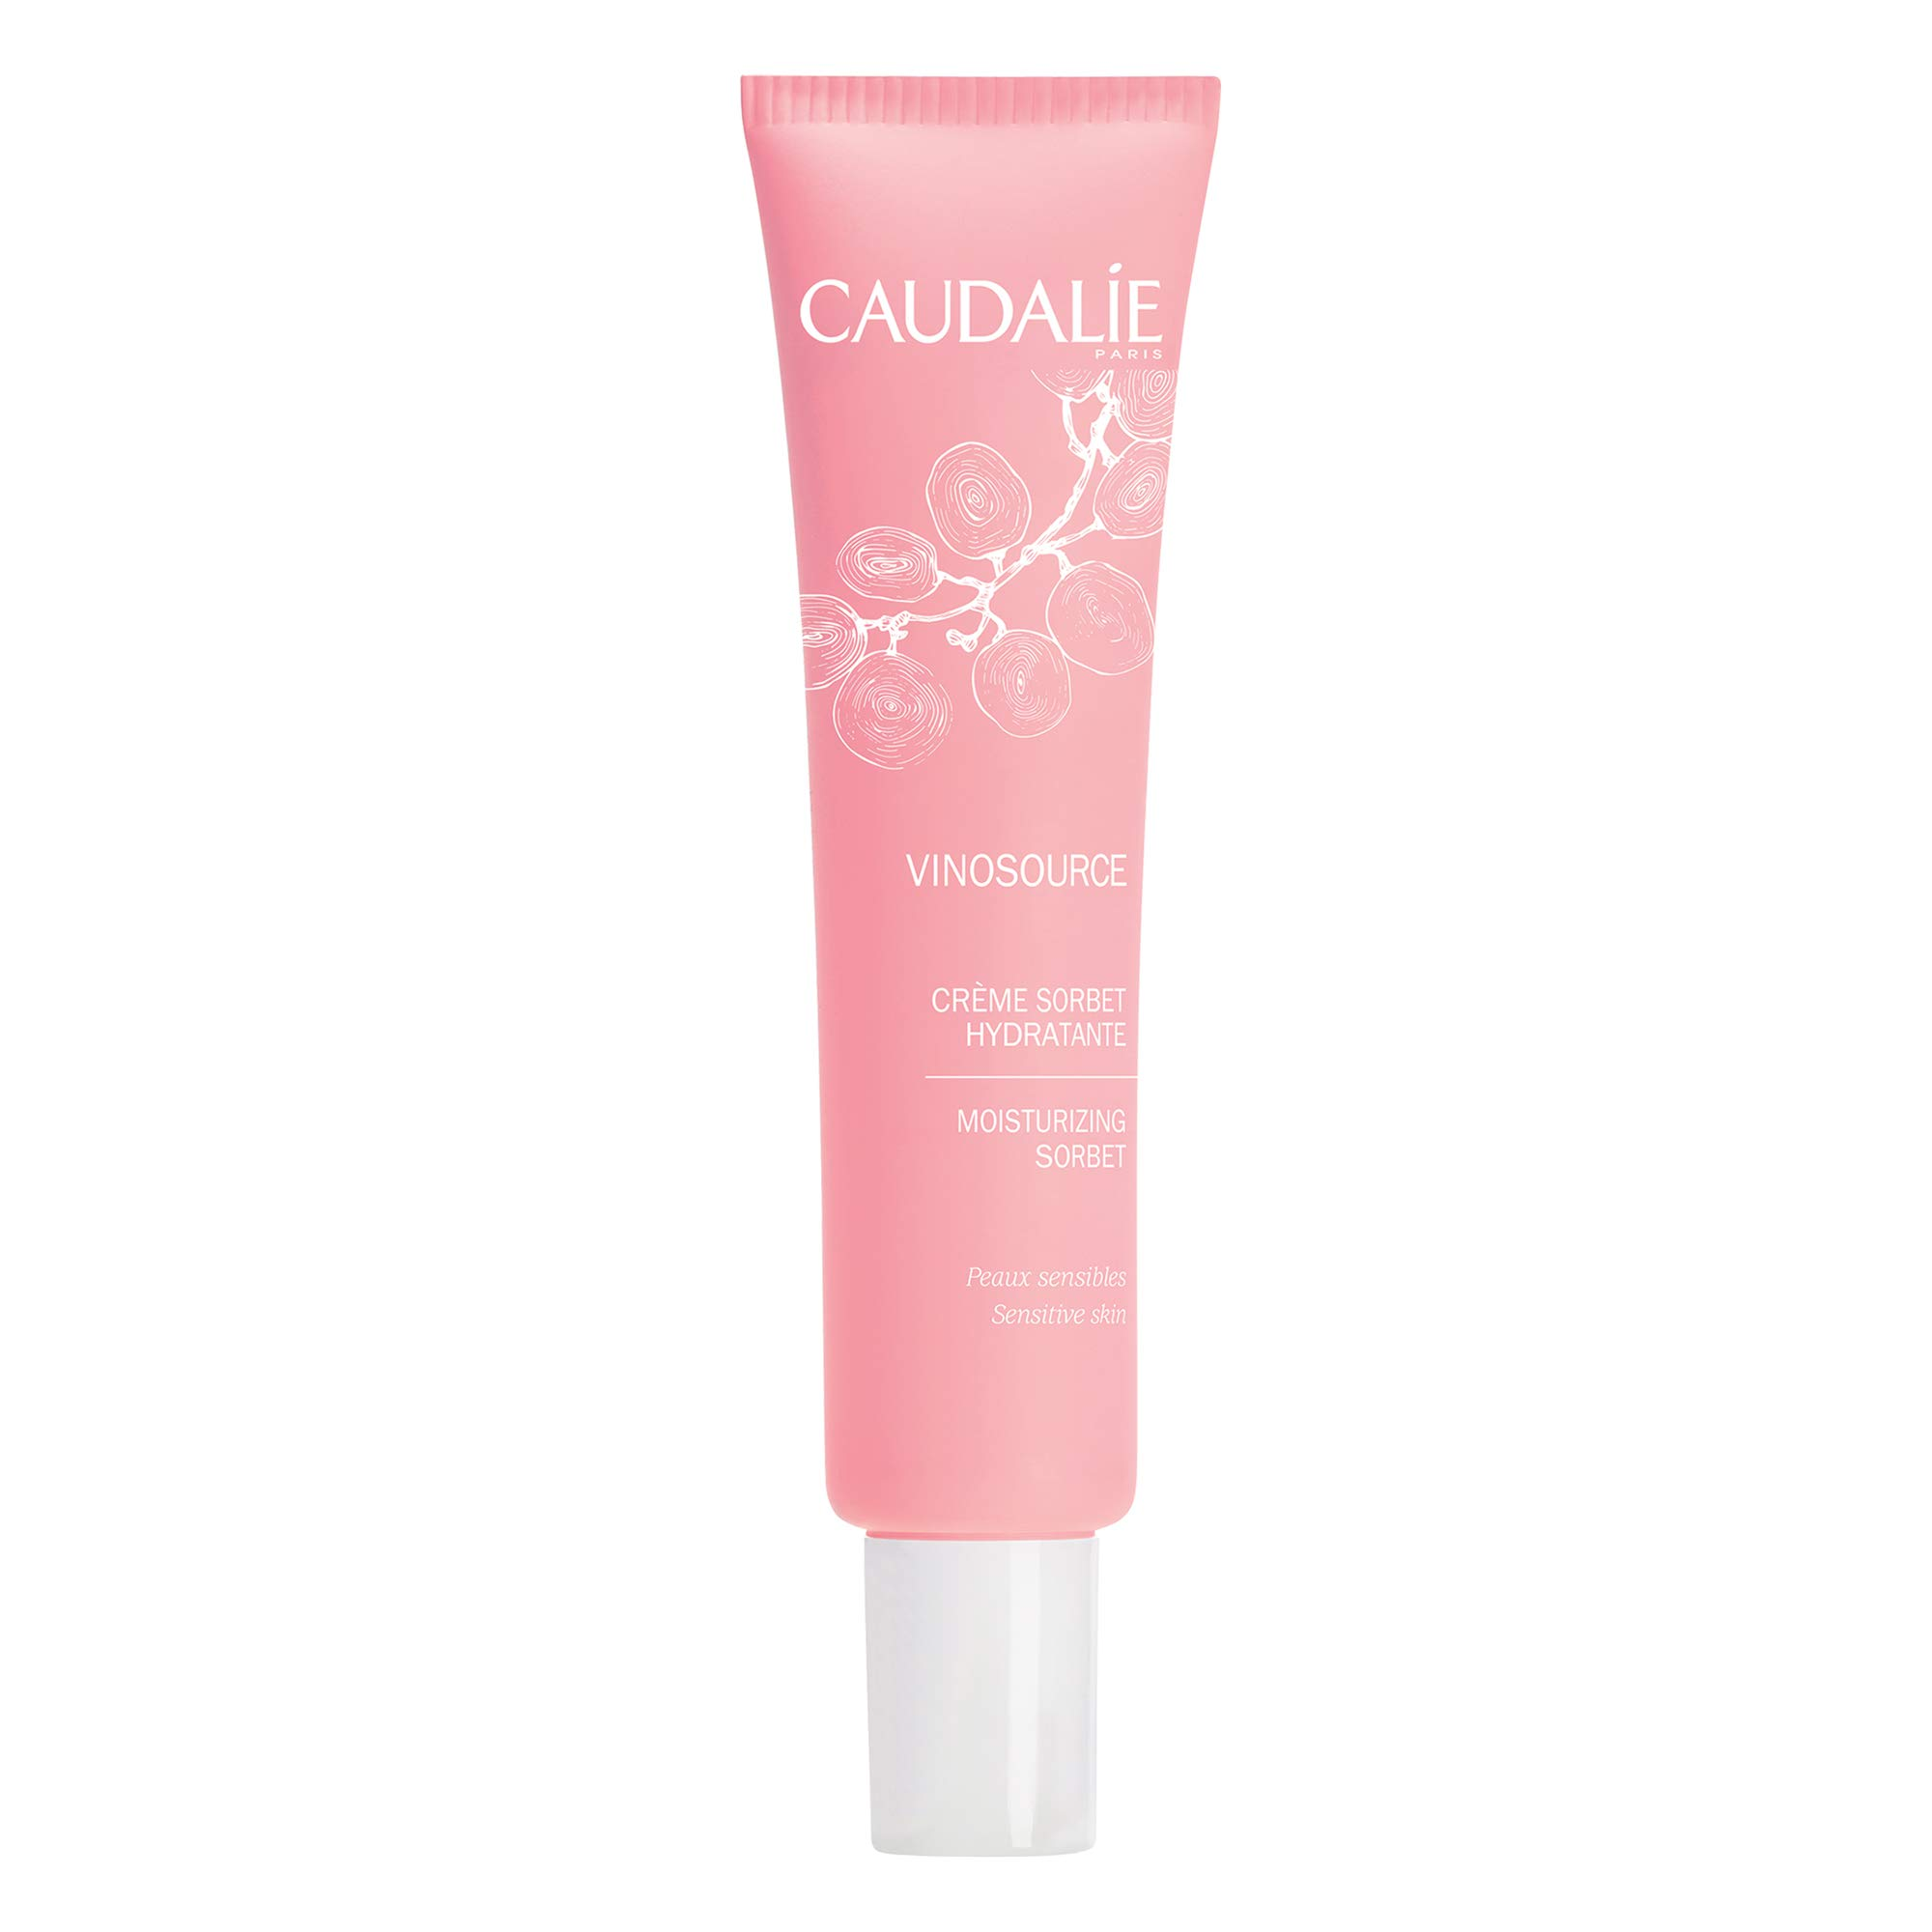 Caudalie Vinosource Soothing Moisturizing Sorbet, 1.3 Ounce